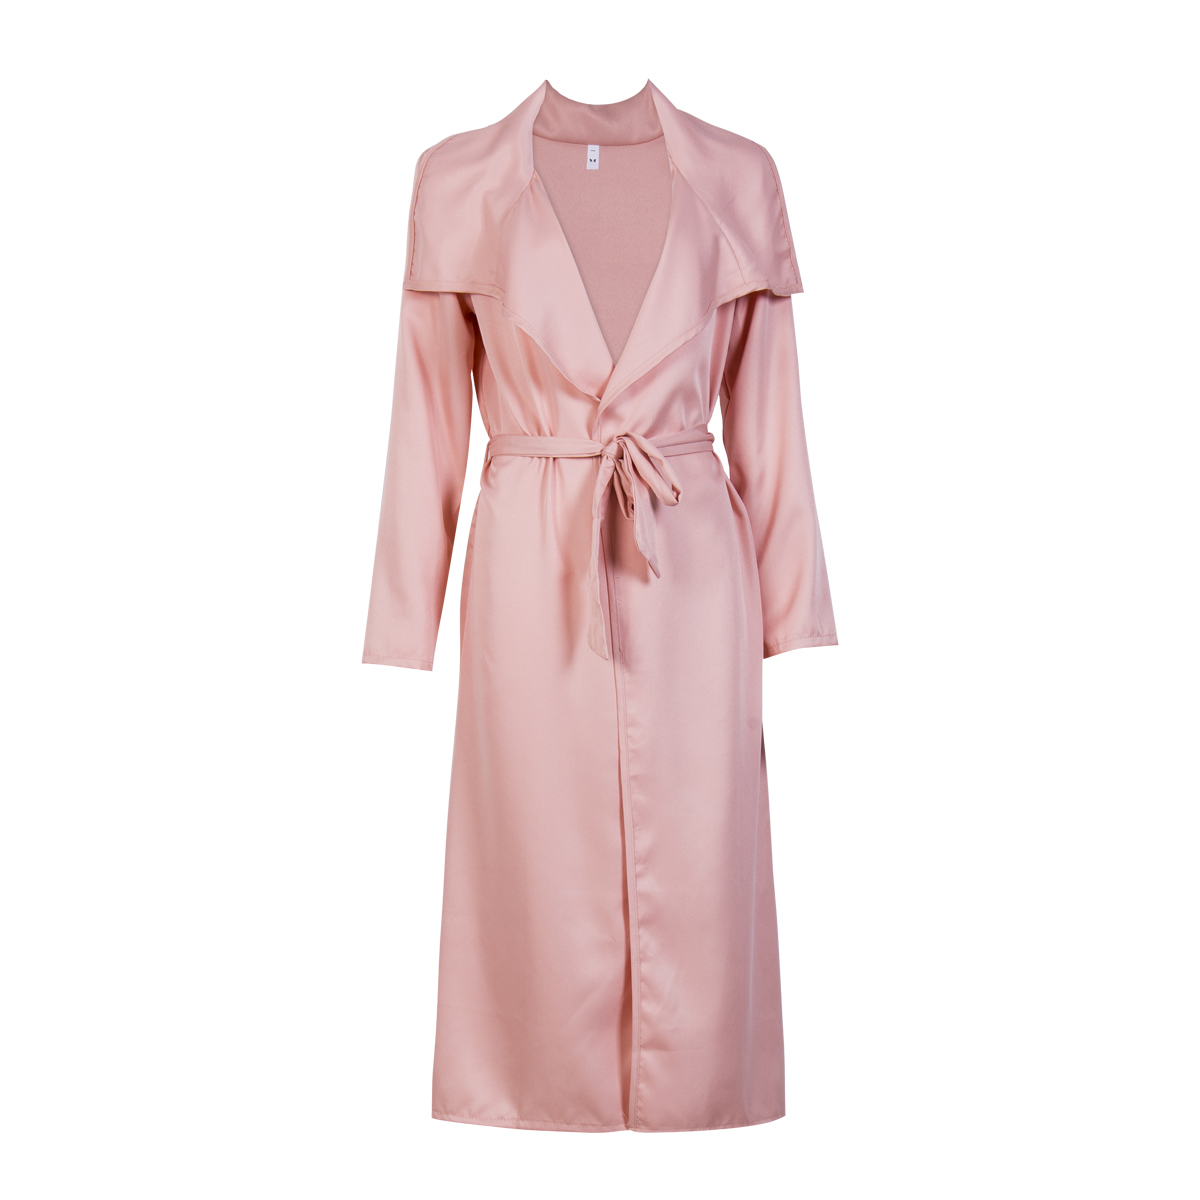 New Fashion Womens Open Front Long Sleeve Overcoat Trench England Style X-Long Coats Sashes